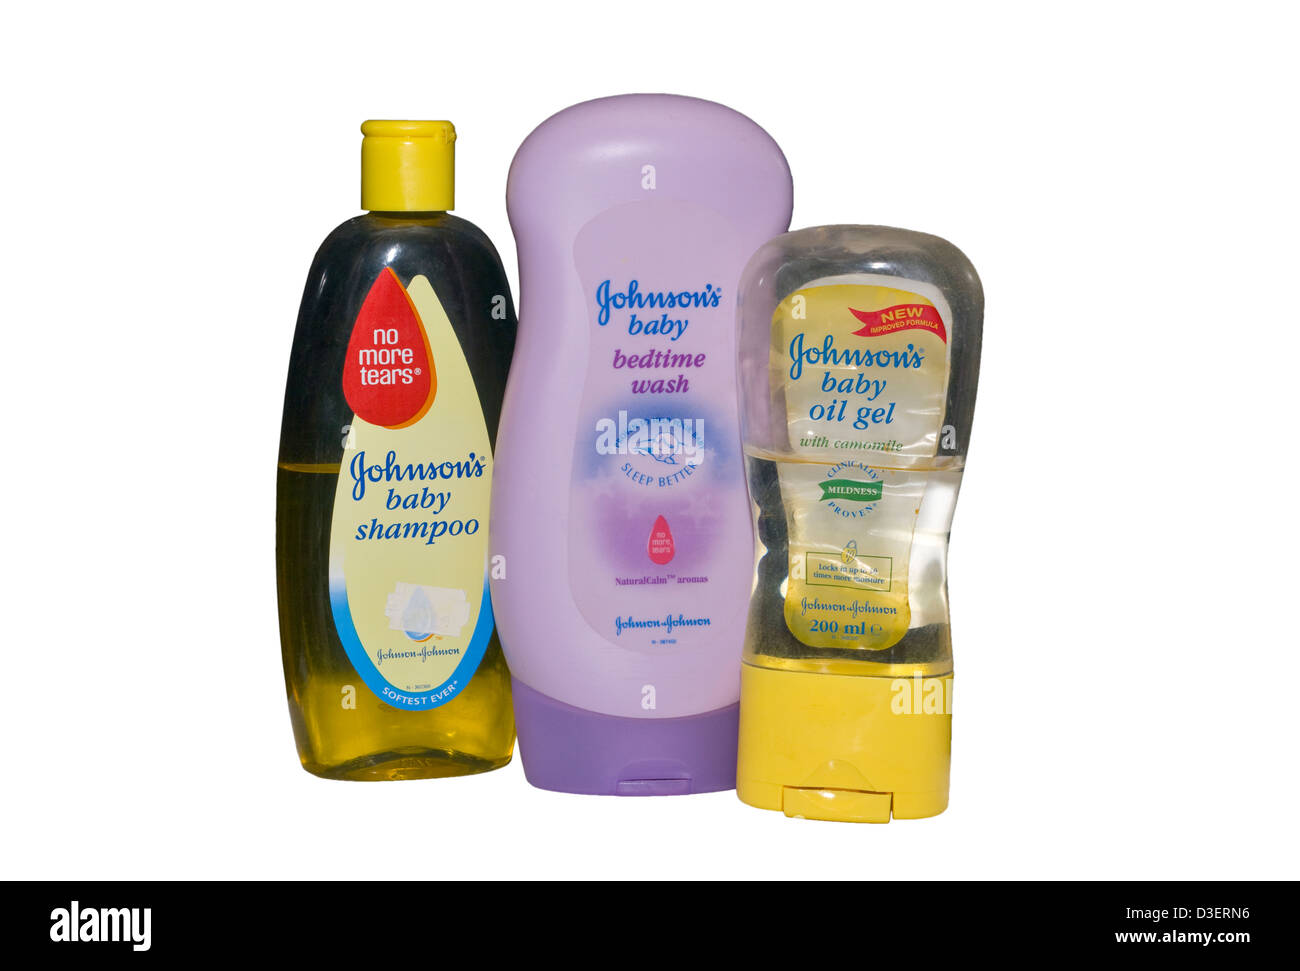 Johnsons Baby Products Stock Photos Oil 200ml Hair And Skin Image